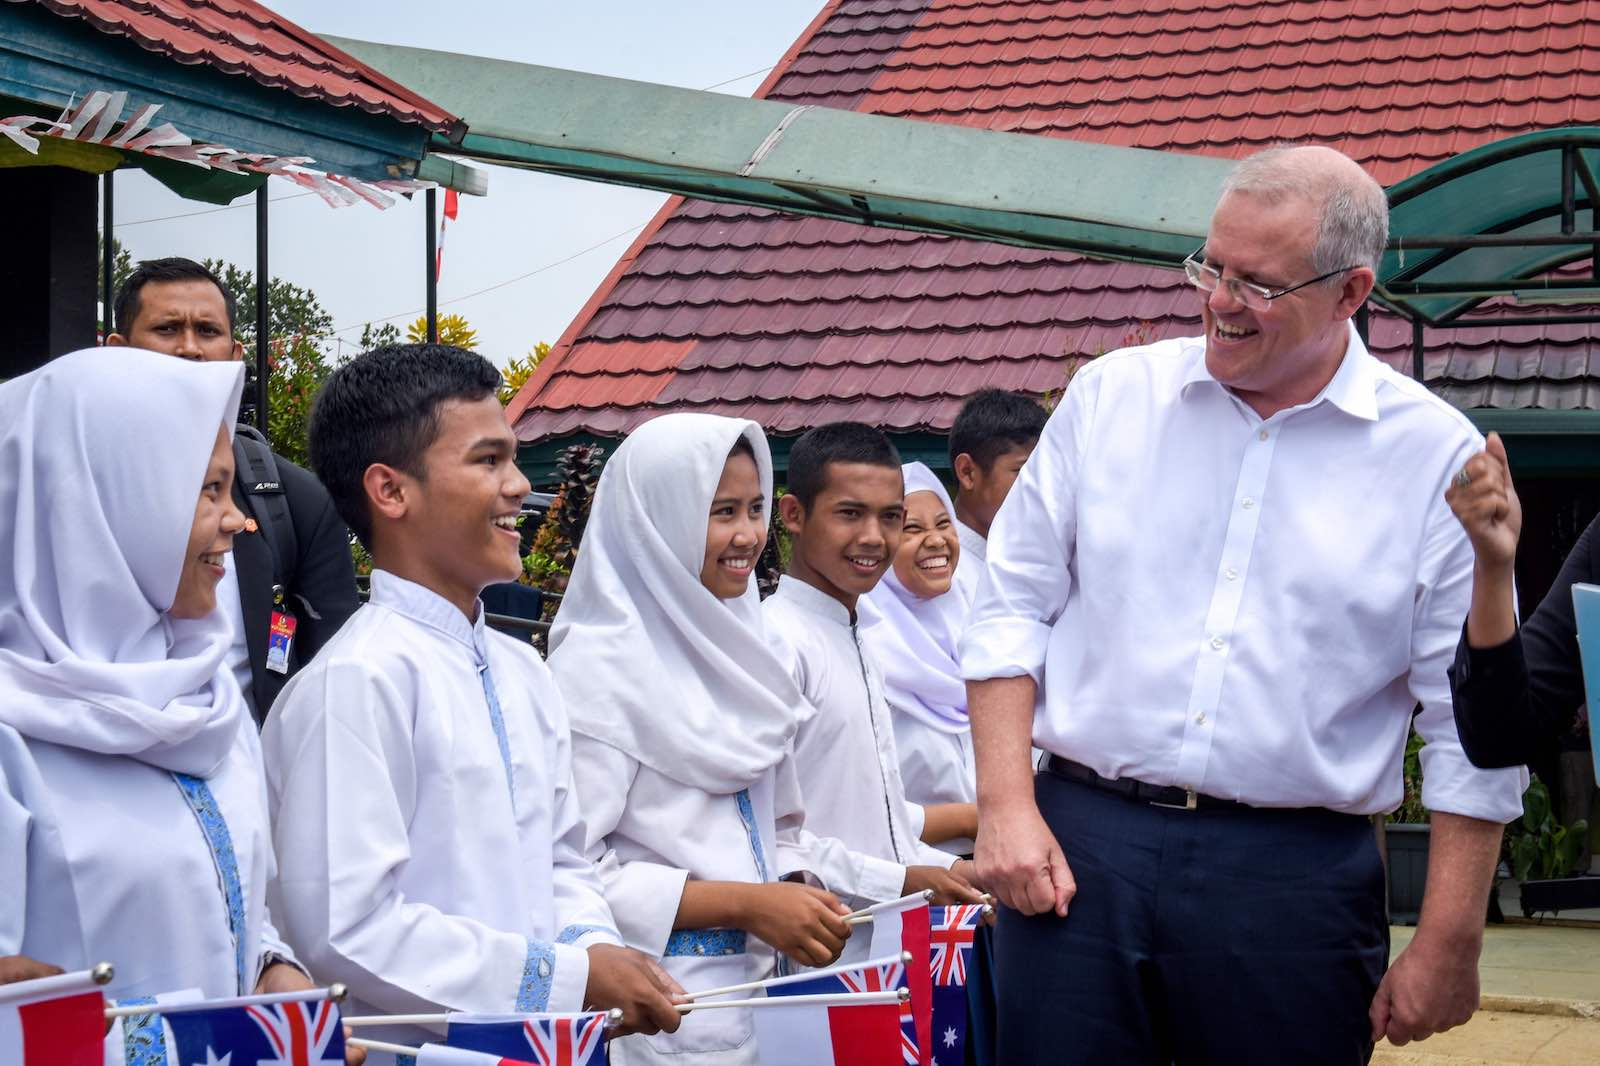 Prime Minister Scott Morrison in Indonesia in August 2018 (Photo: Australian Embassy Jakarta/Flickr)